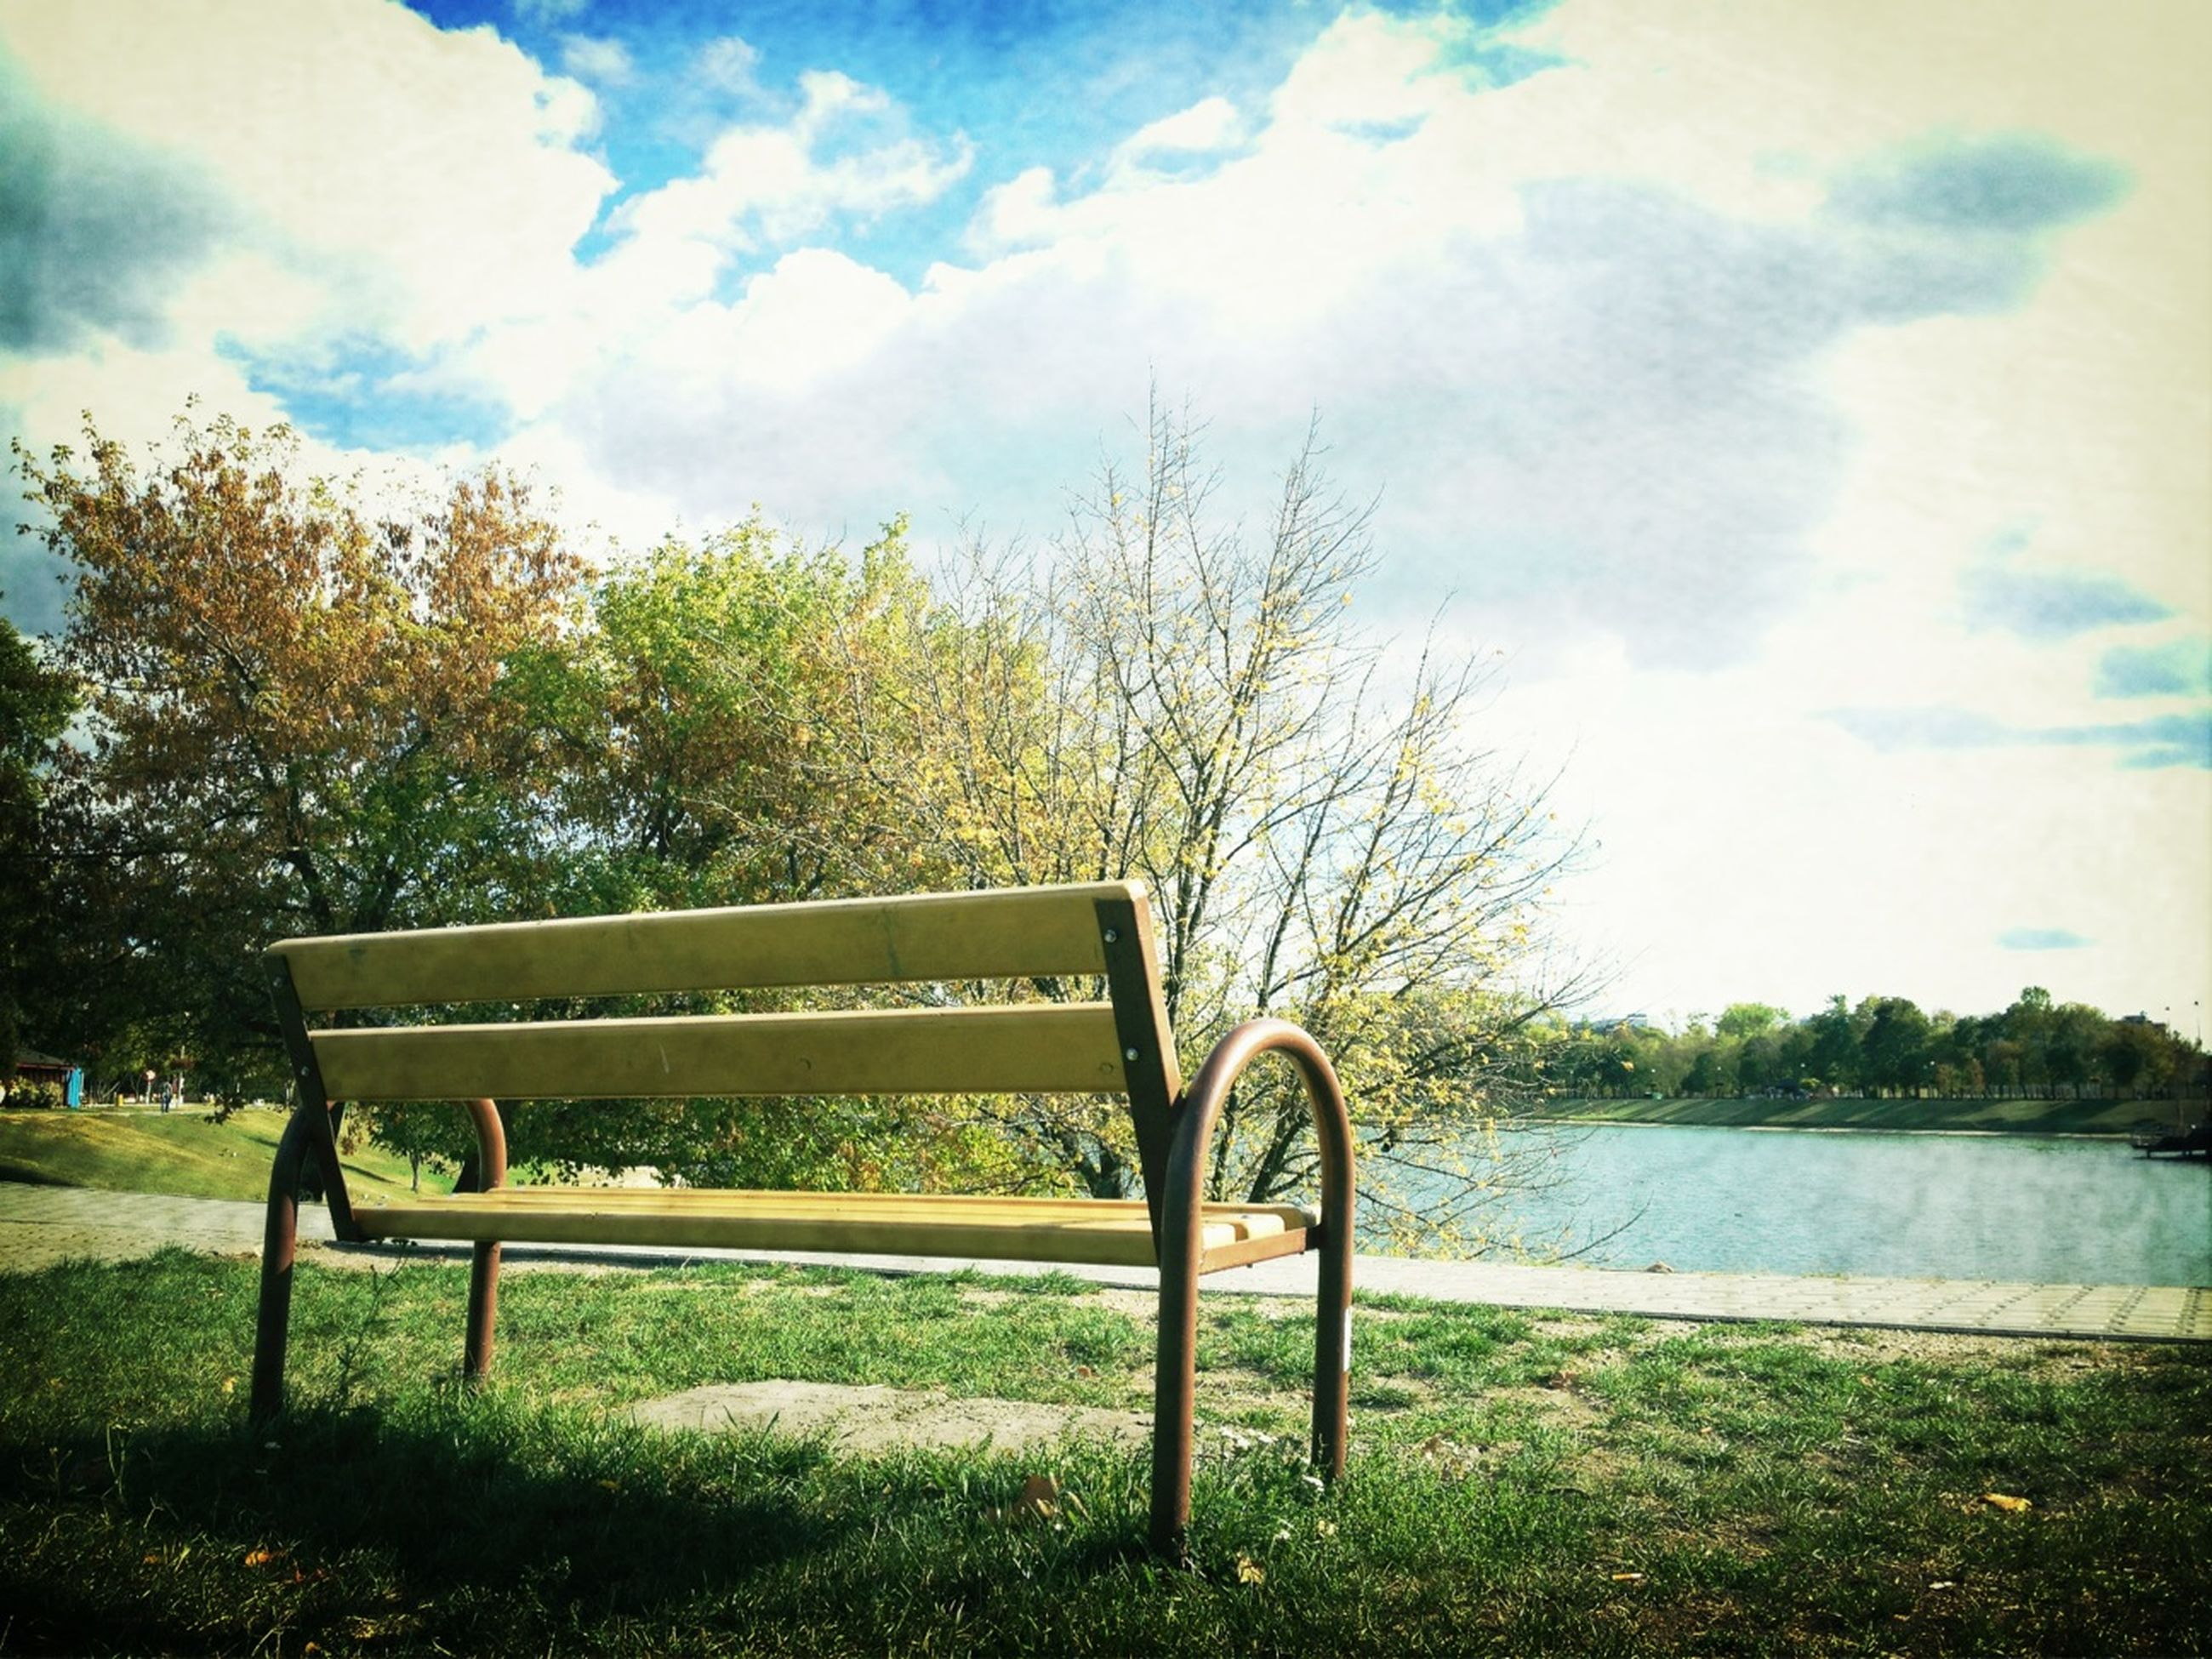 tree, sky, tranquility, water, tranquil scene, grass, lake, bench, empty, nature, cloud - sky, absence, scenics, cloud, beauty in nature, growth, park bench, day, lakeshore, field